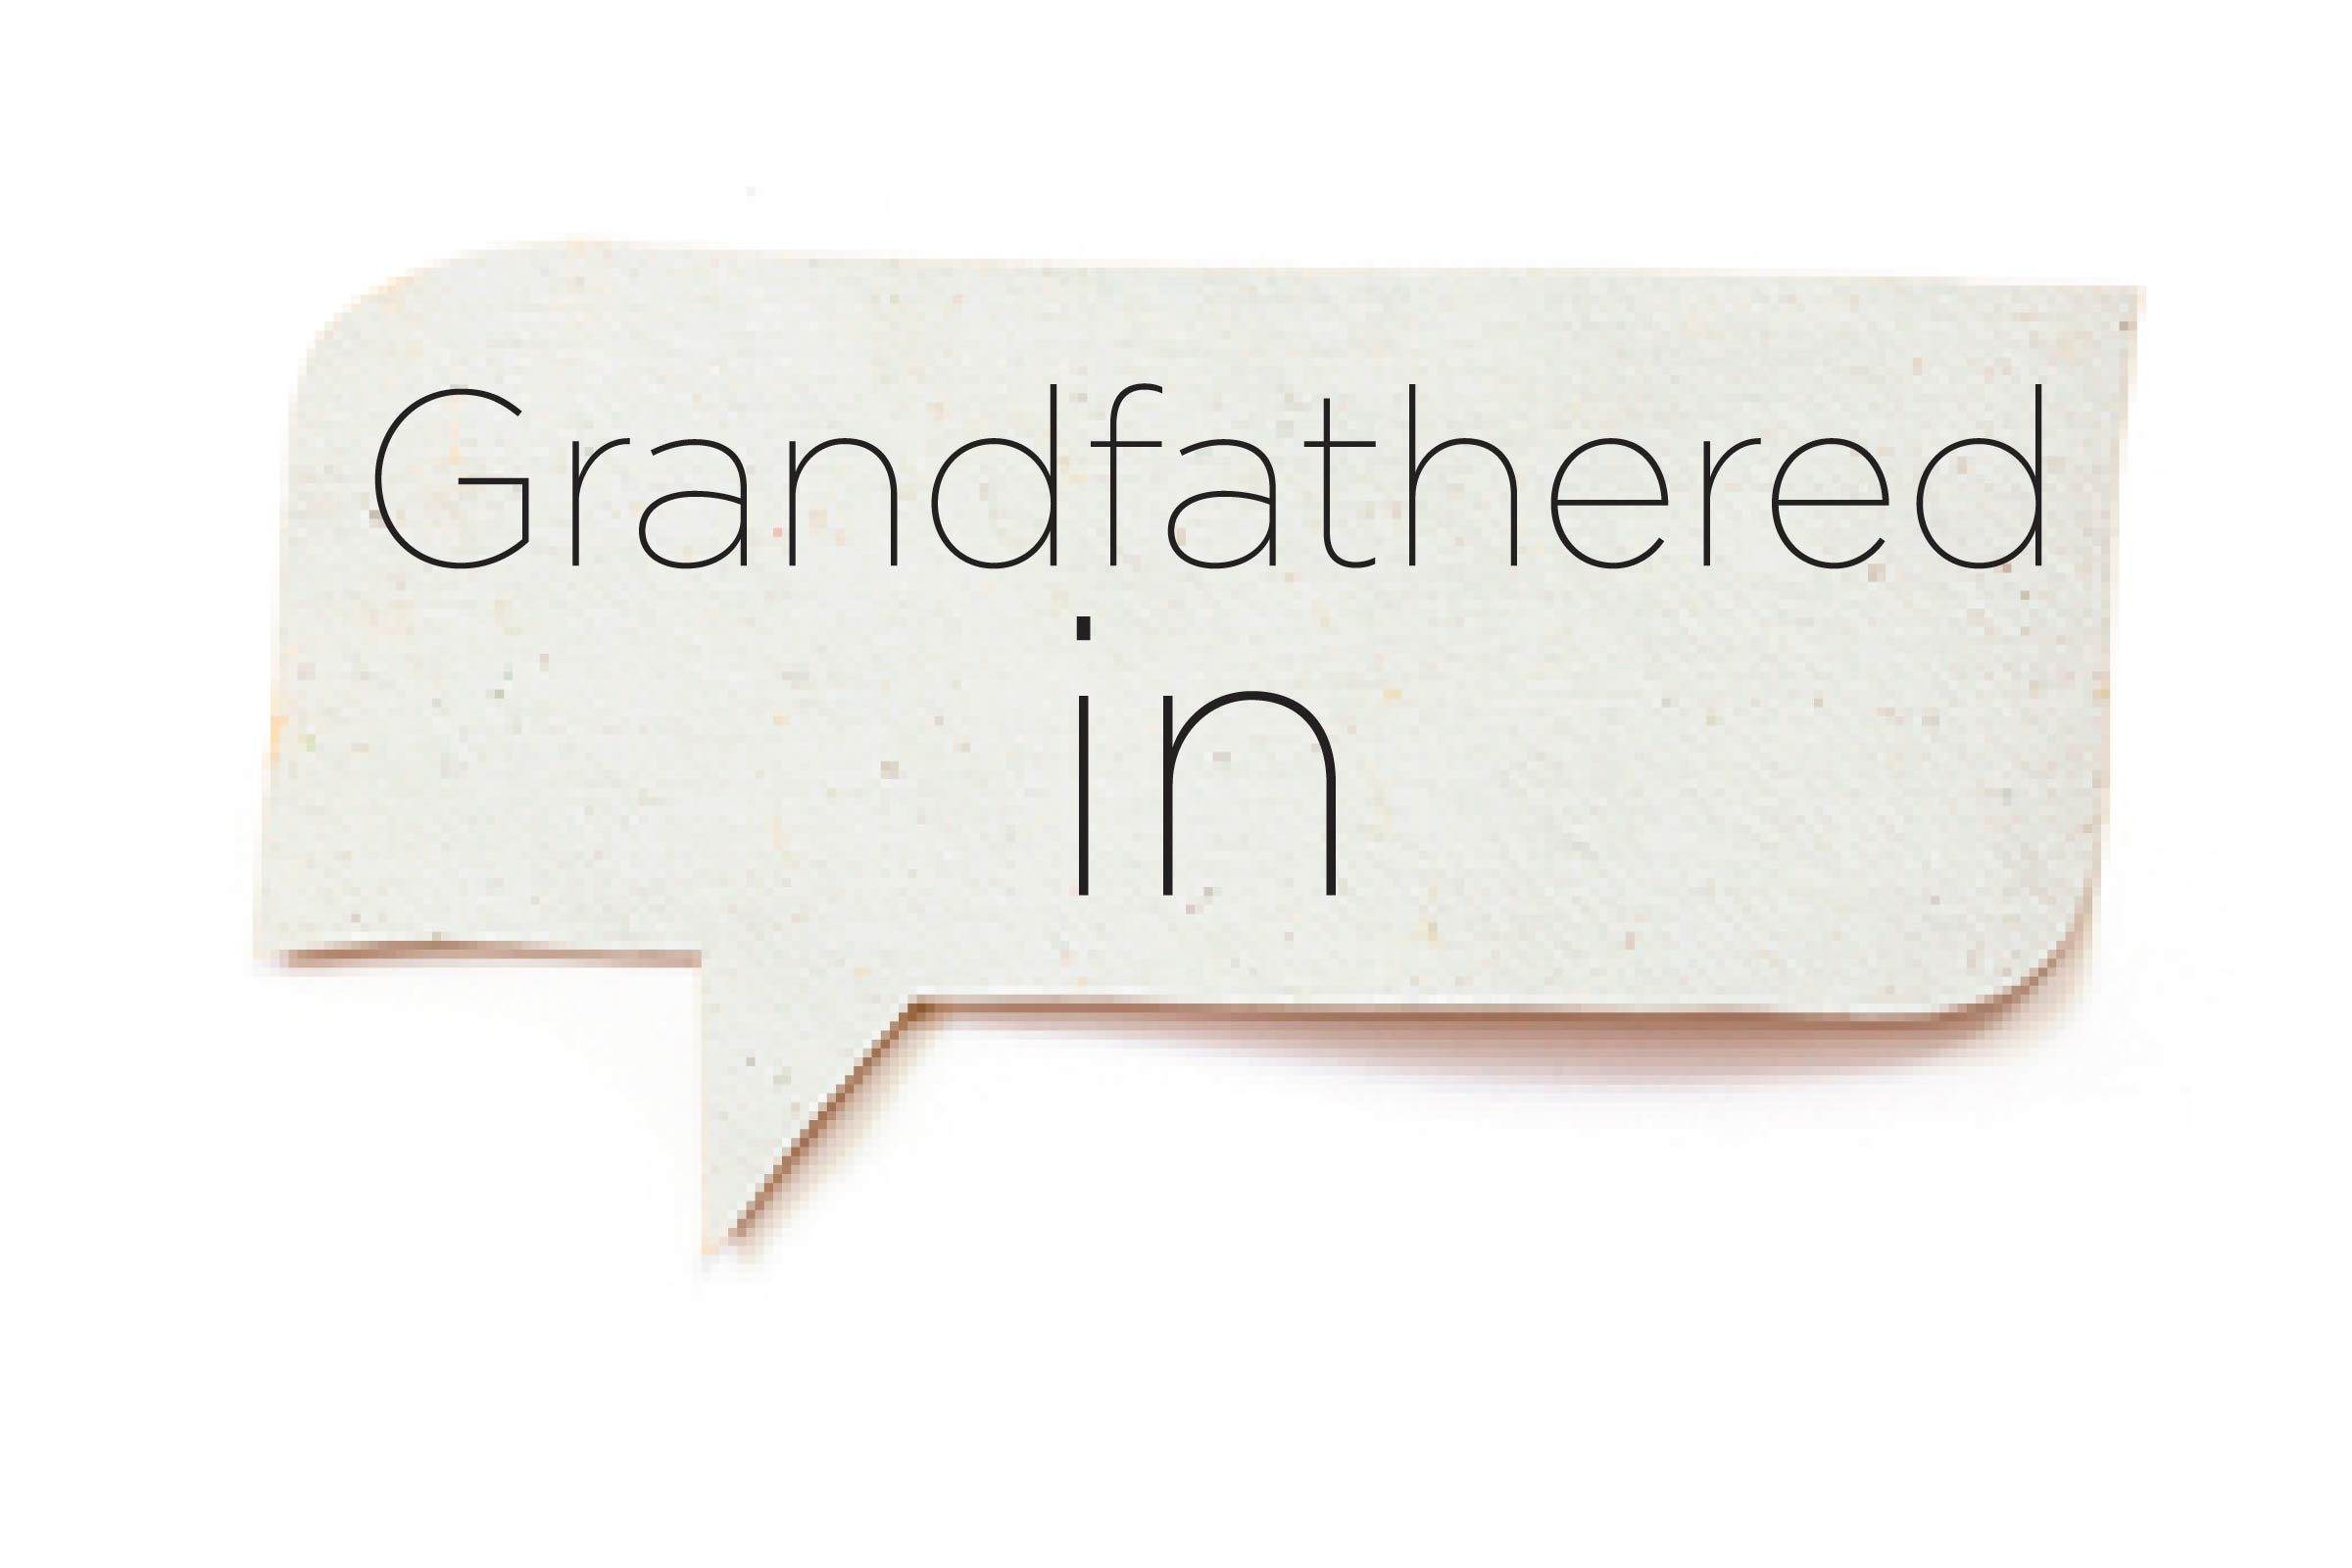 Offensive words - Grandfathered in